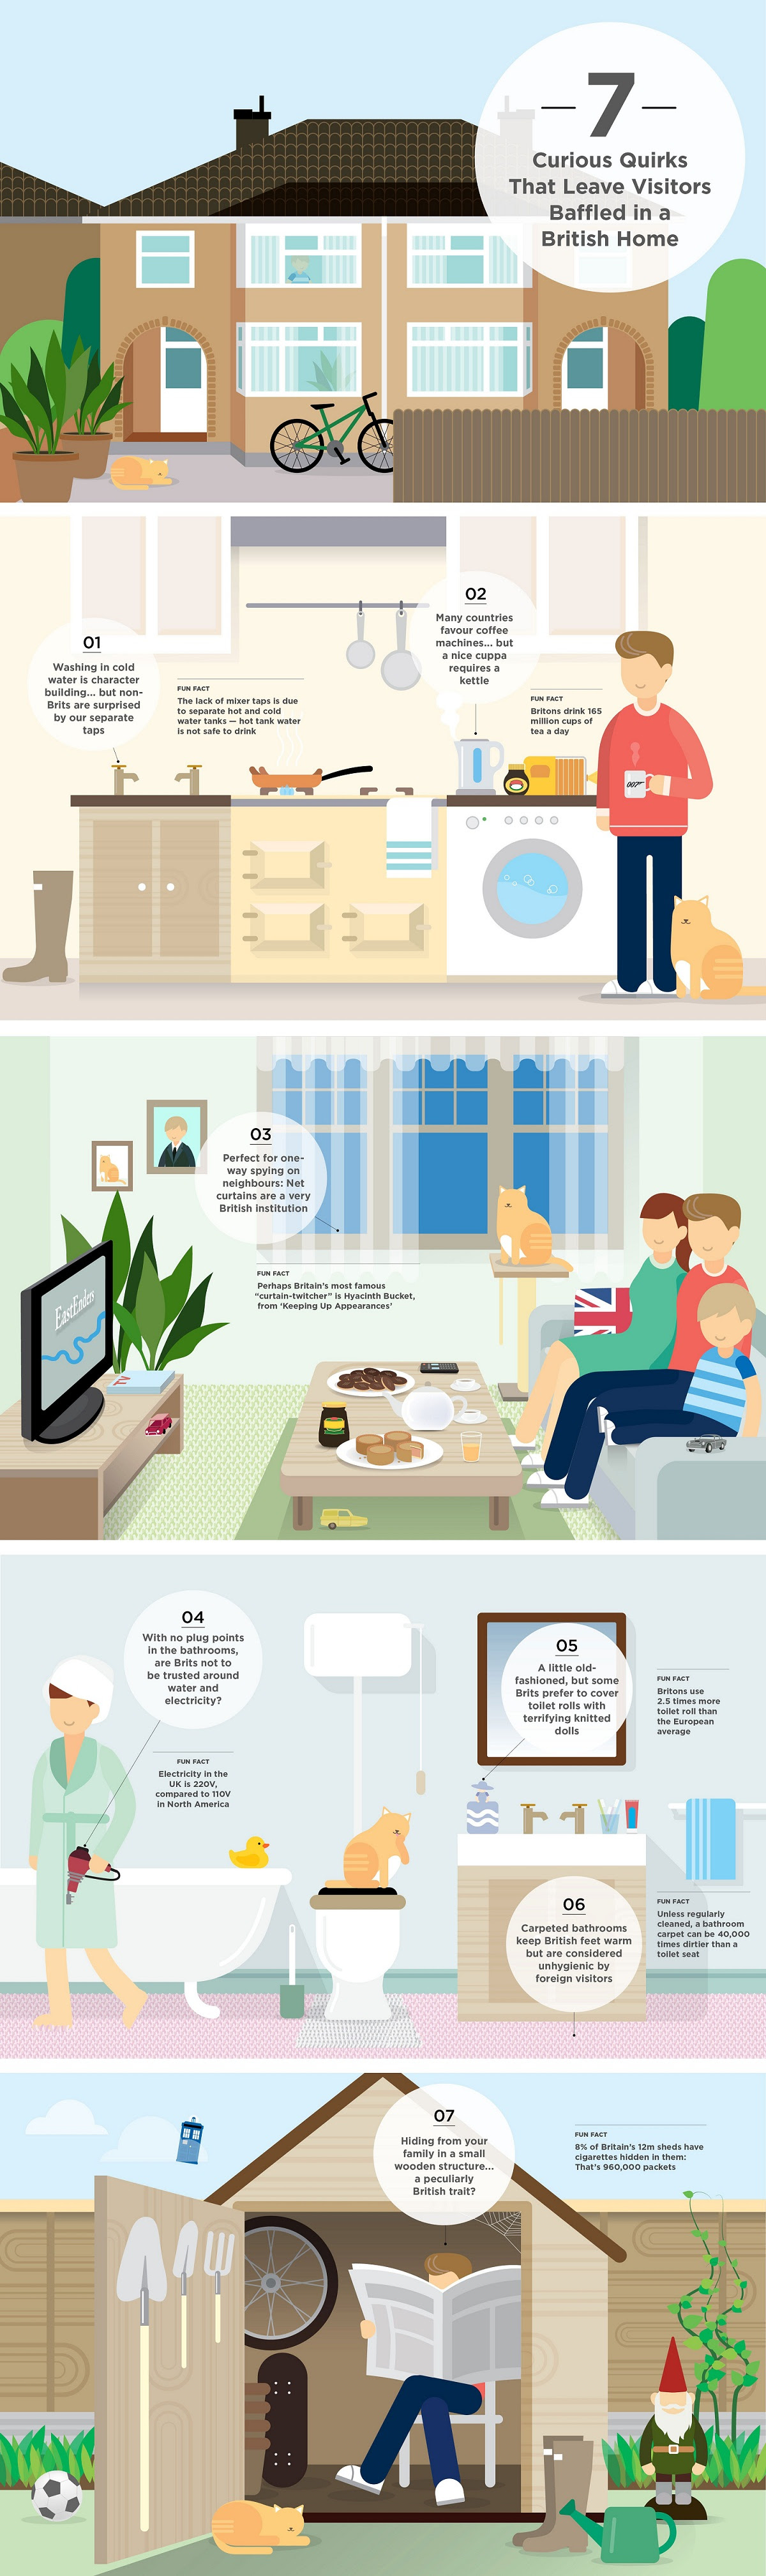 Curious Quirks That Baffle Visitors To British Homes